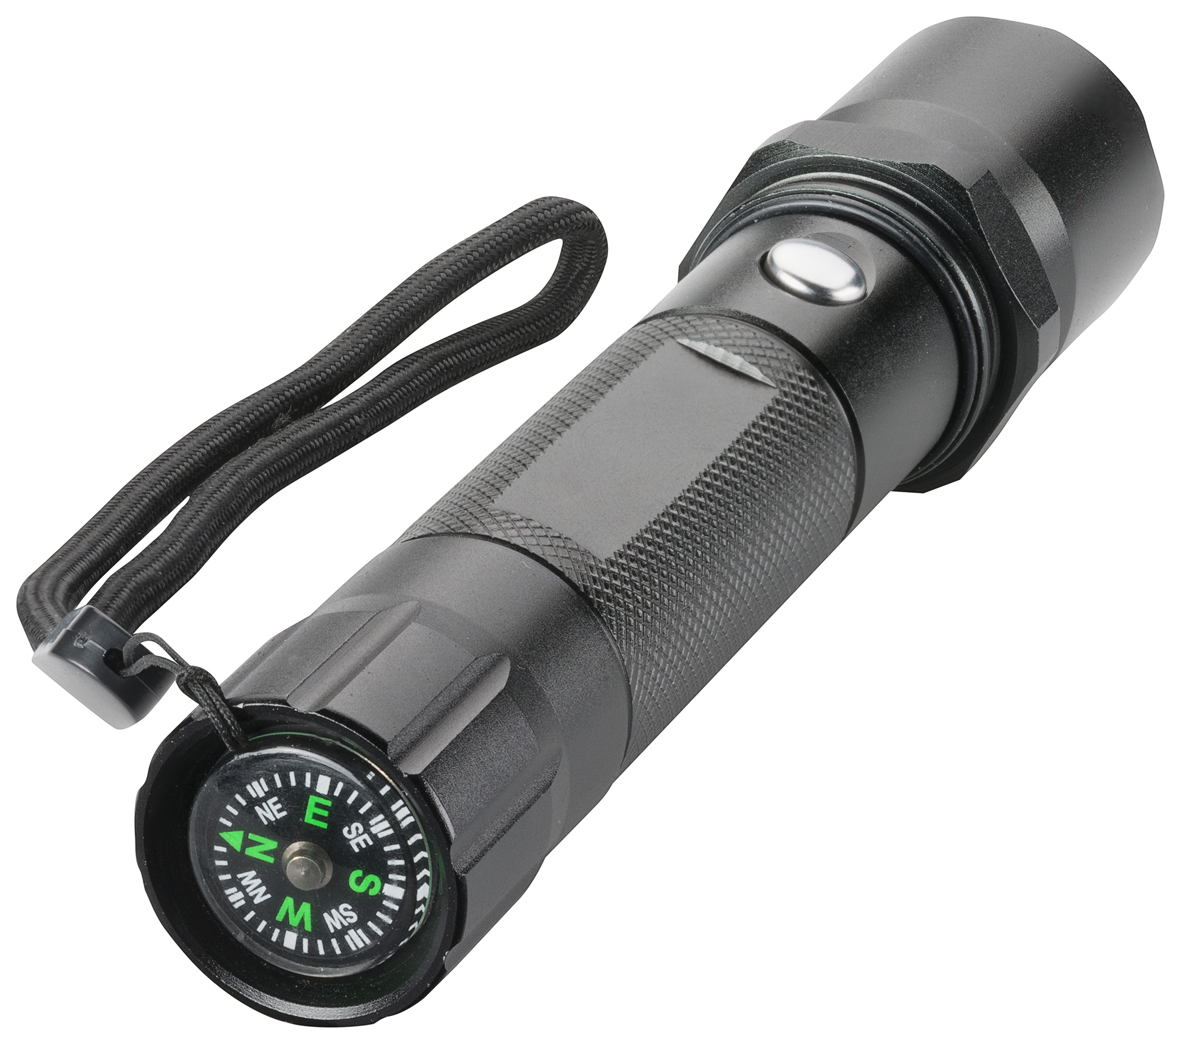 Trekk Torch with Compass